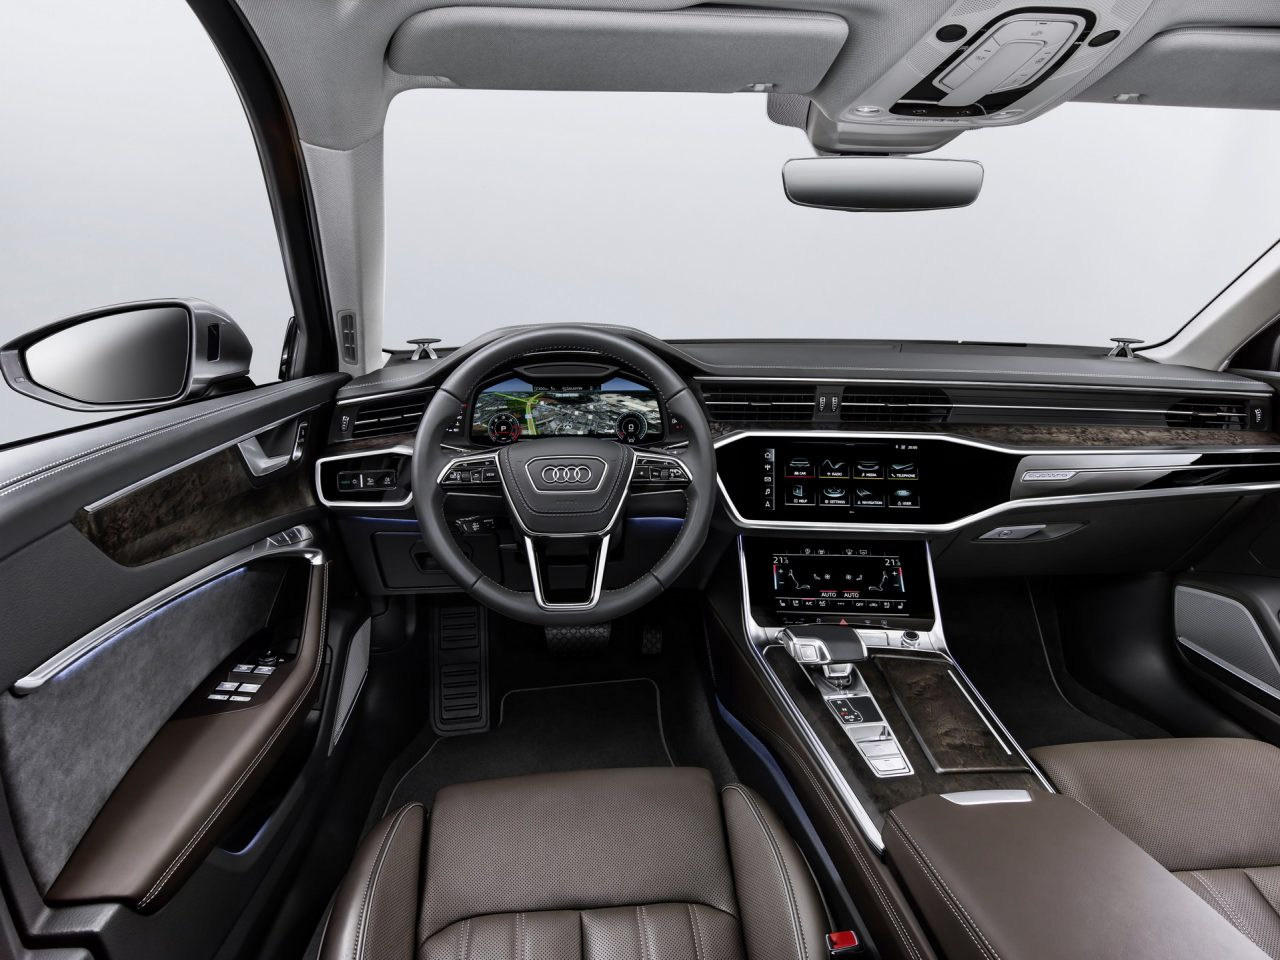 2019 Audi A6 unveiled; mild-hybrid technology, striking new design | PerformanceDrive